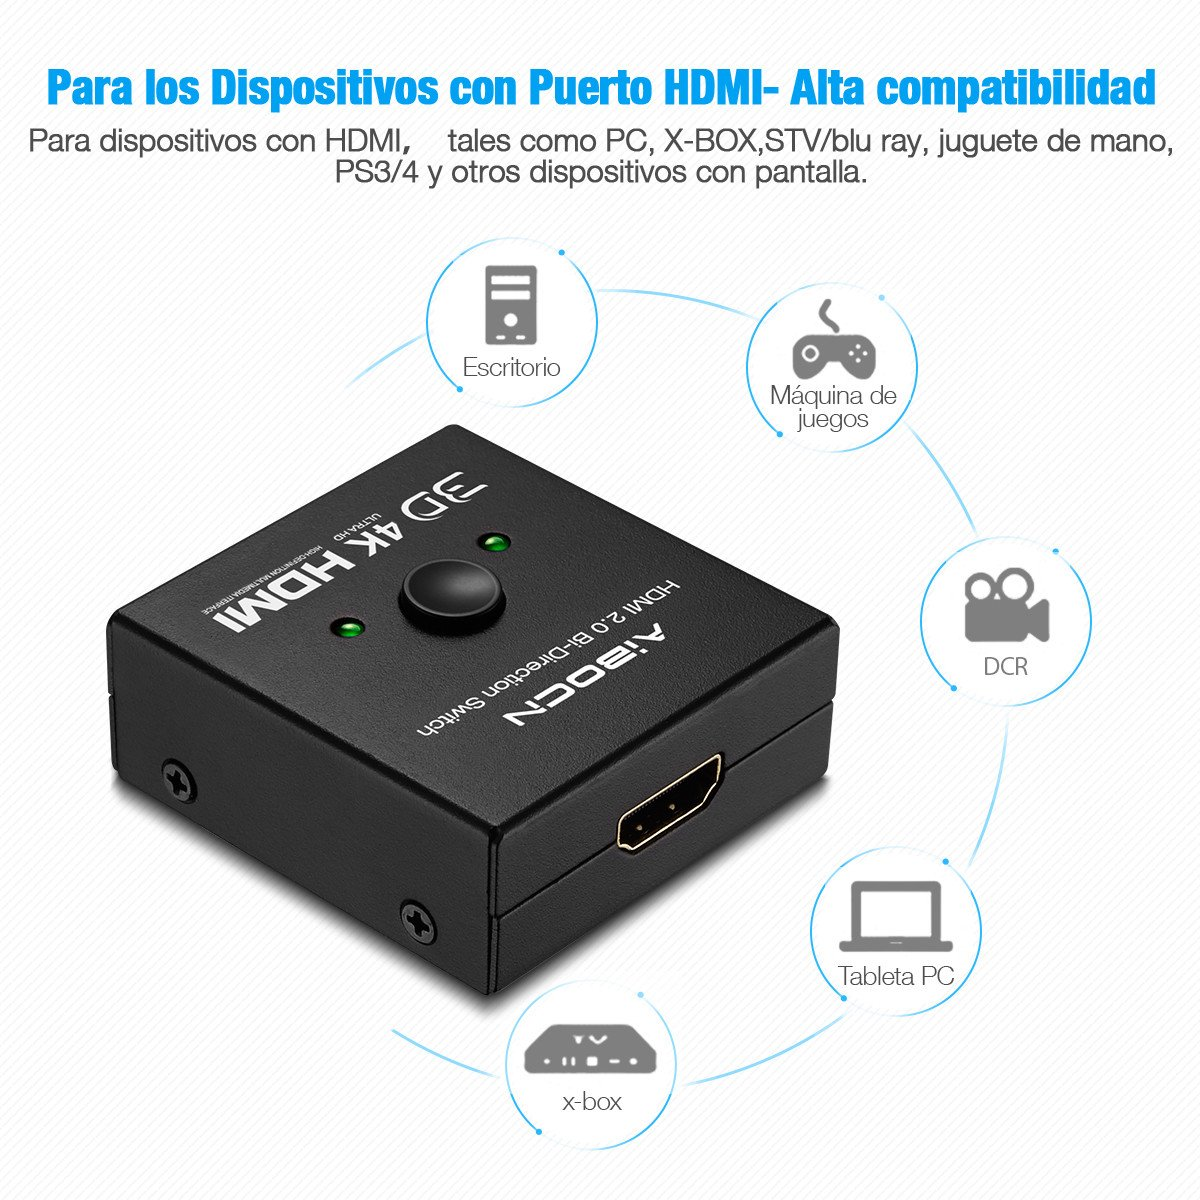 Aibocn Conmutador HDMI Switch Divisor 4K HDMI Bidireccional 2x1 Soporta 4K 3D 1080P para TV/PS4/PS3/XboX/DVD BLU-Ray,Color Negro